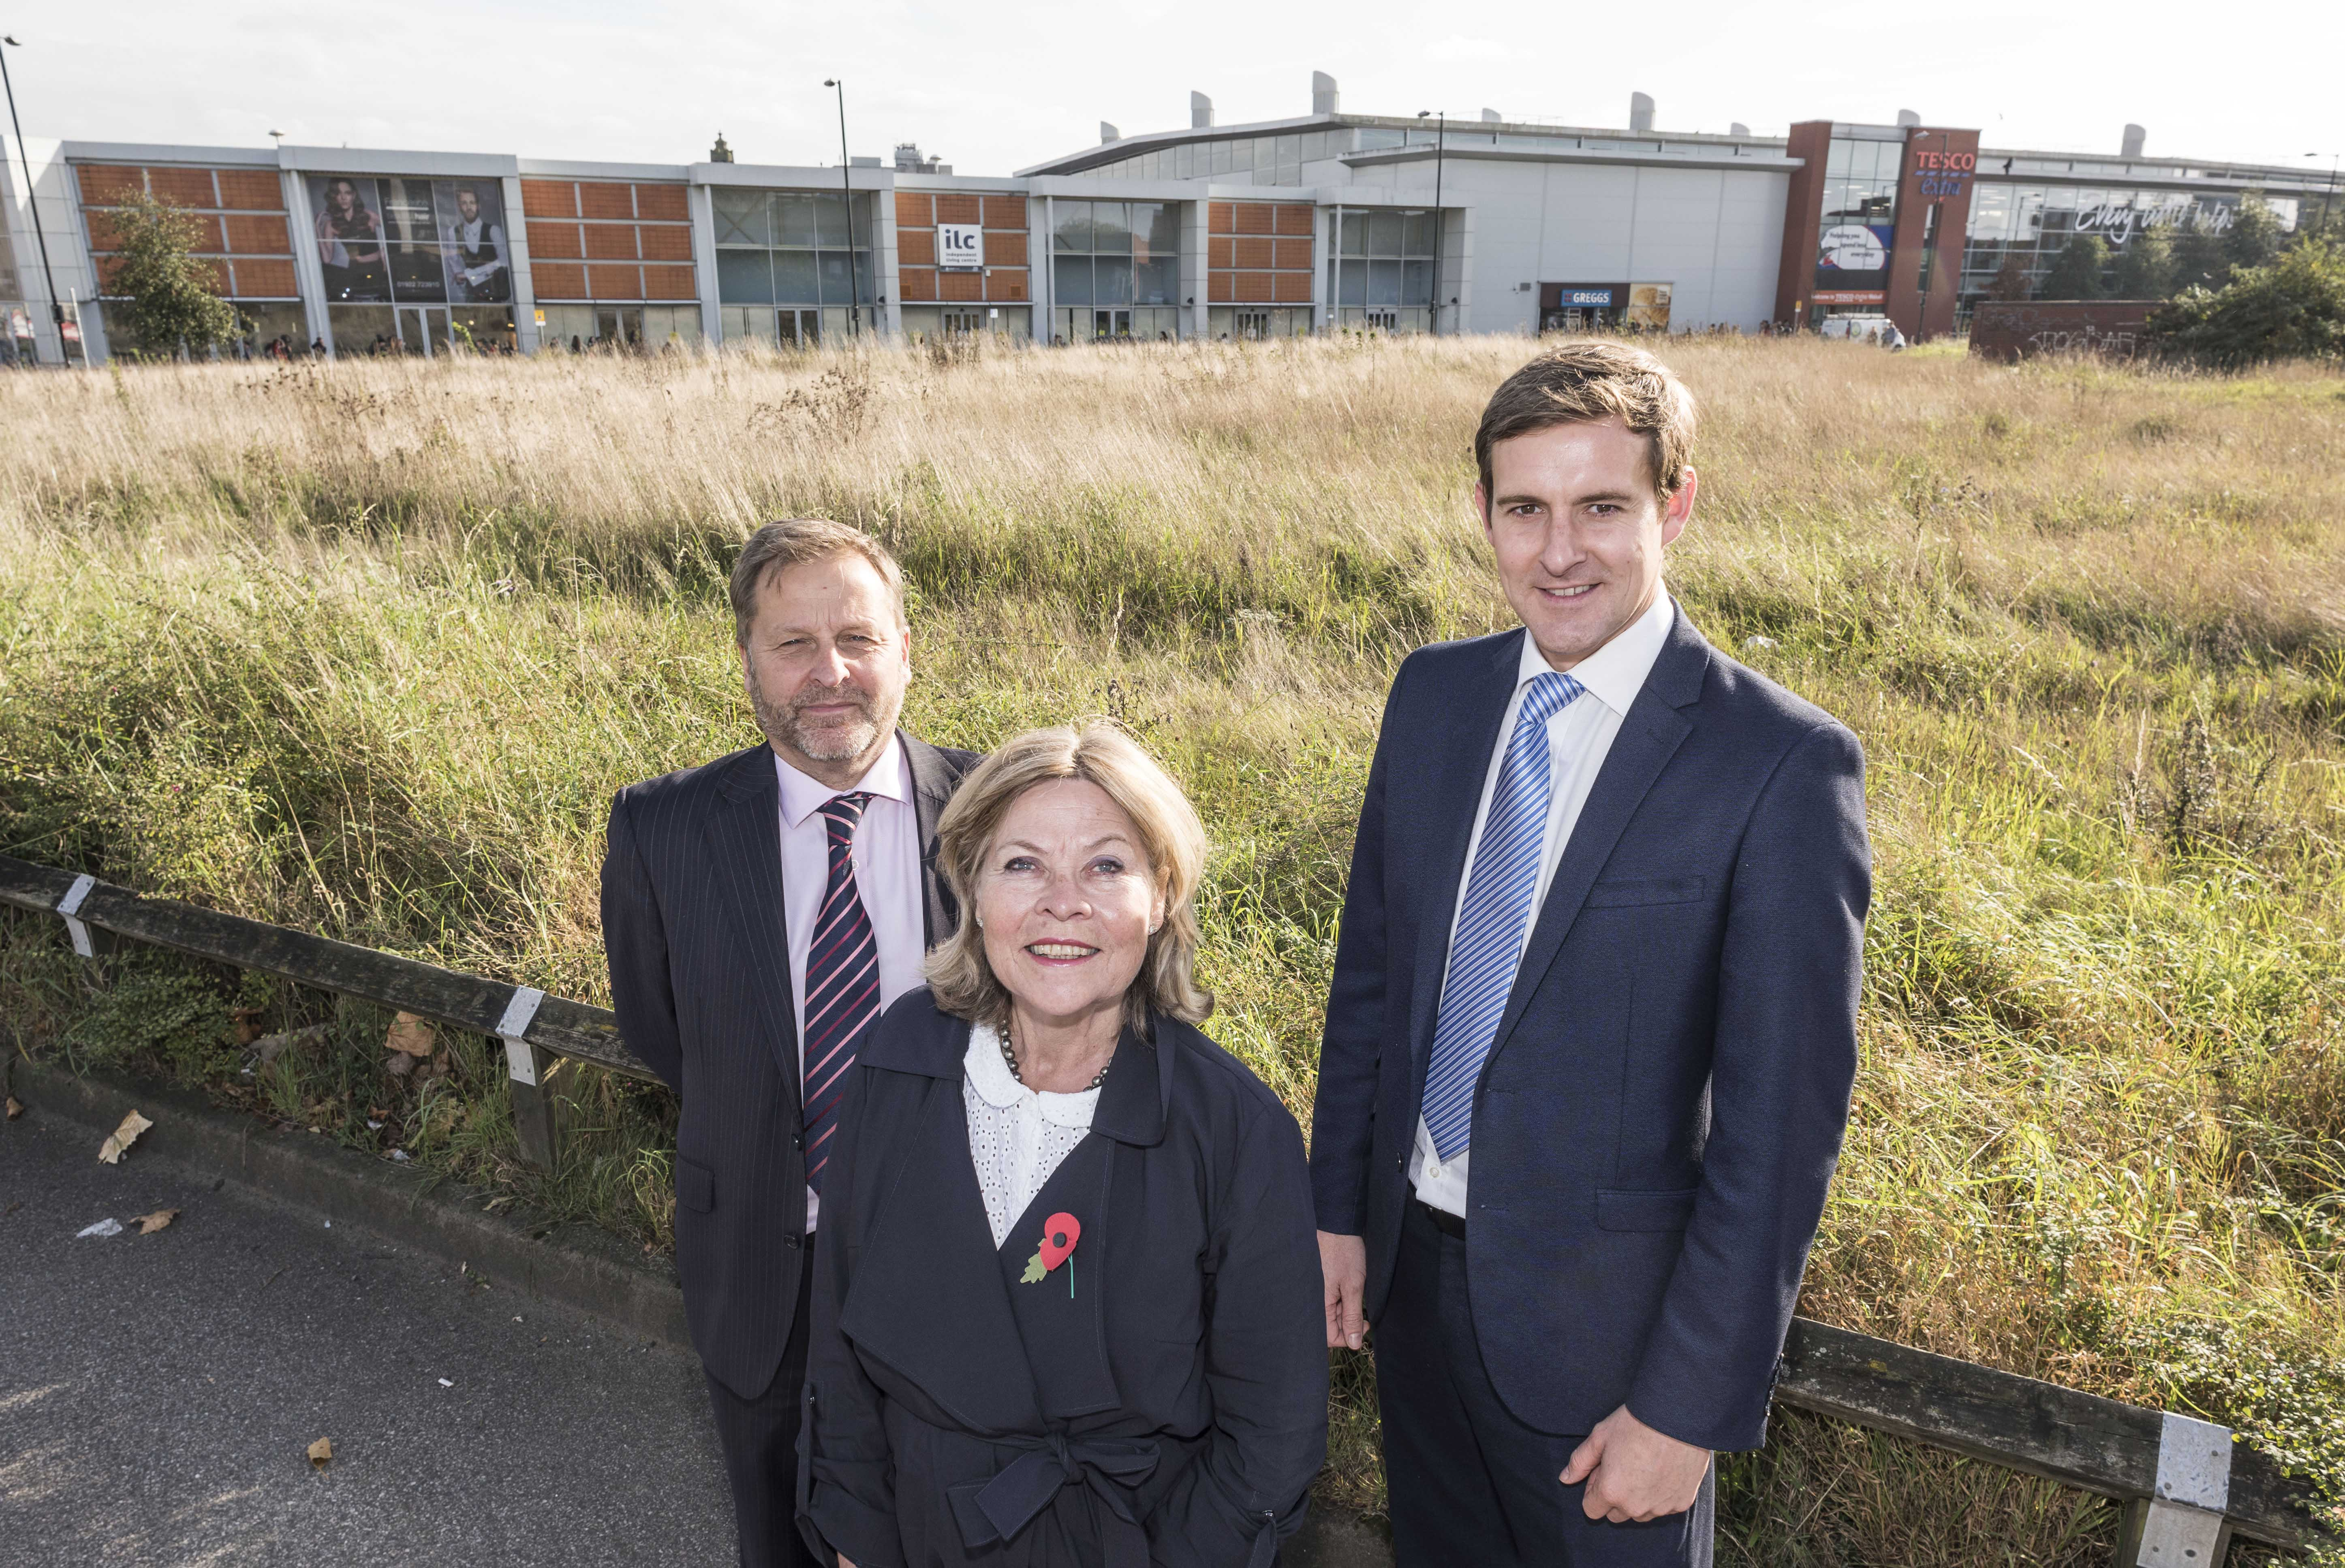 £6.9m backing for Walsall town centre development by WMCA's Collective Investment Fund